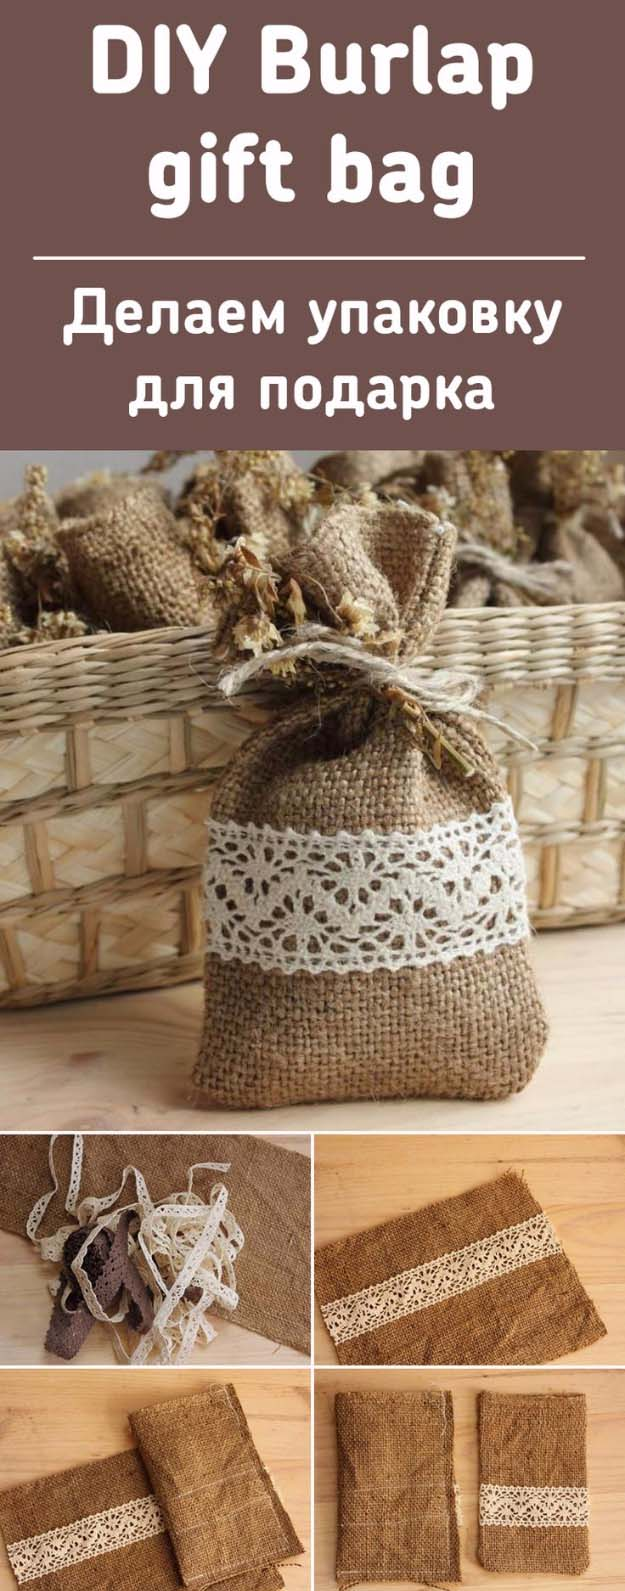 DIY Projects with Burlap and Creative Burlap Crafts for Home Decor, Gifts and More | Burlap Gift Bag